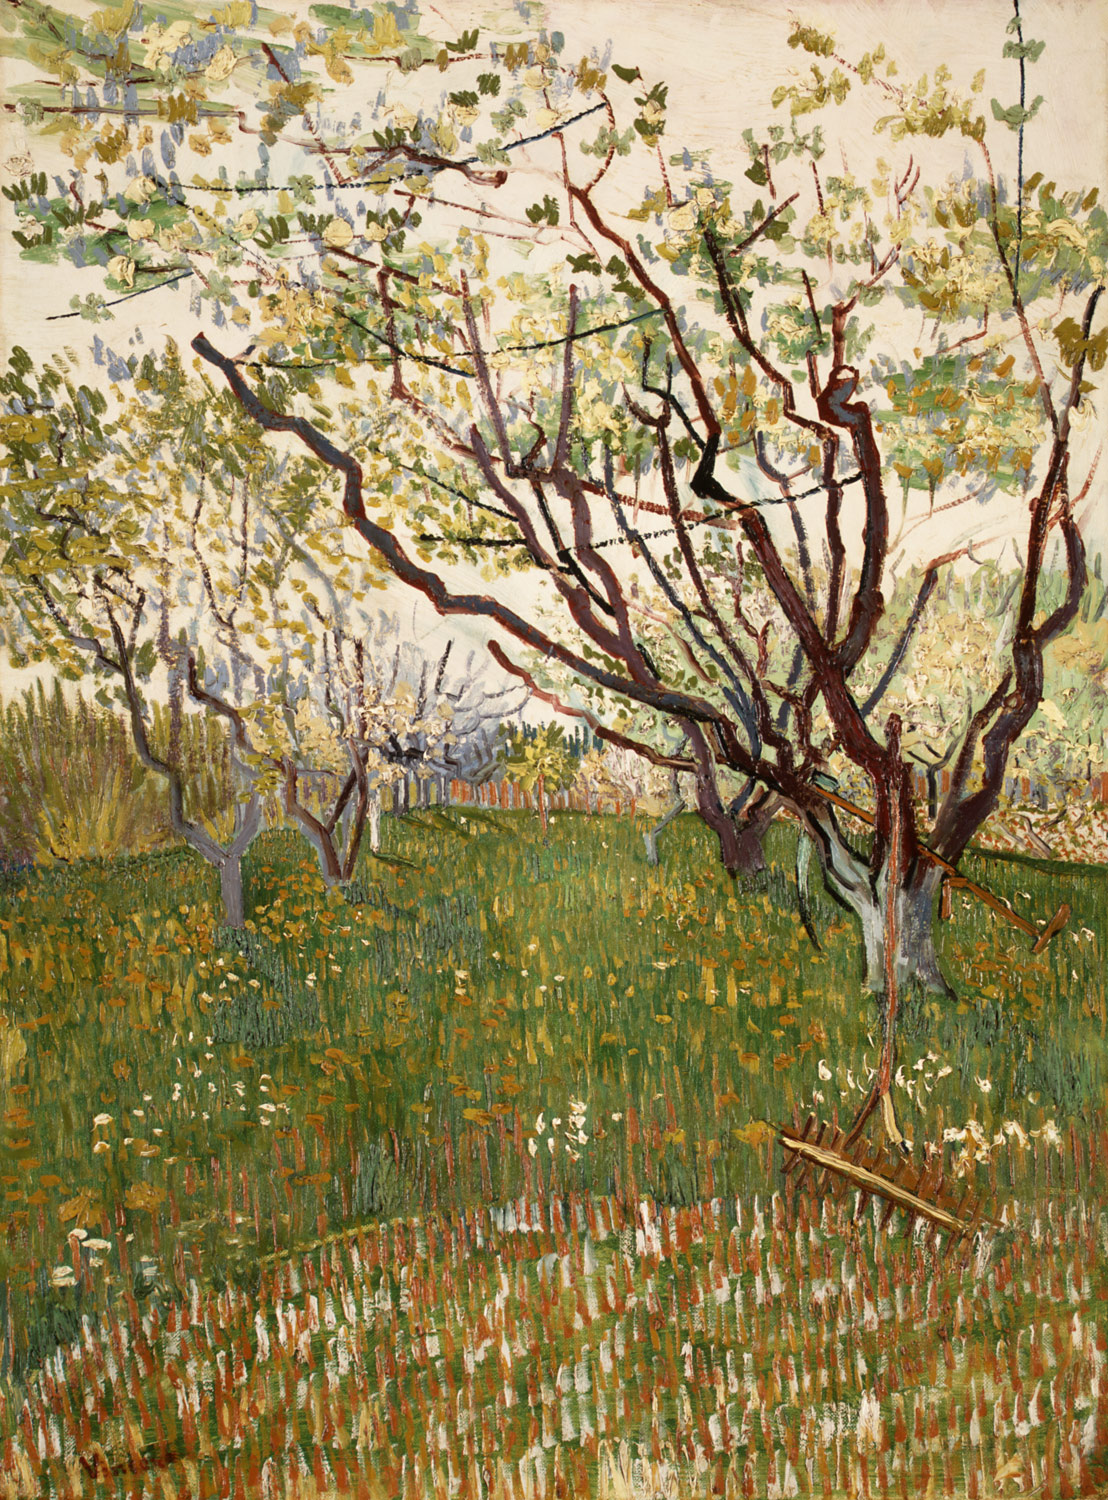 vincent van gogh essay heilbrunn timeline of art the flowering orchard